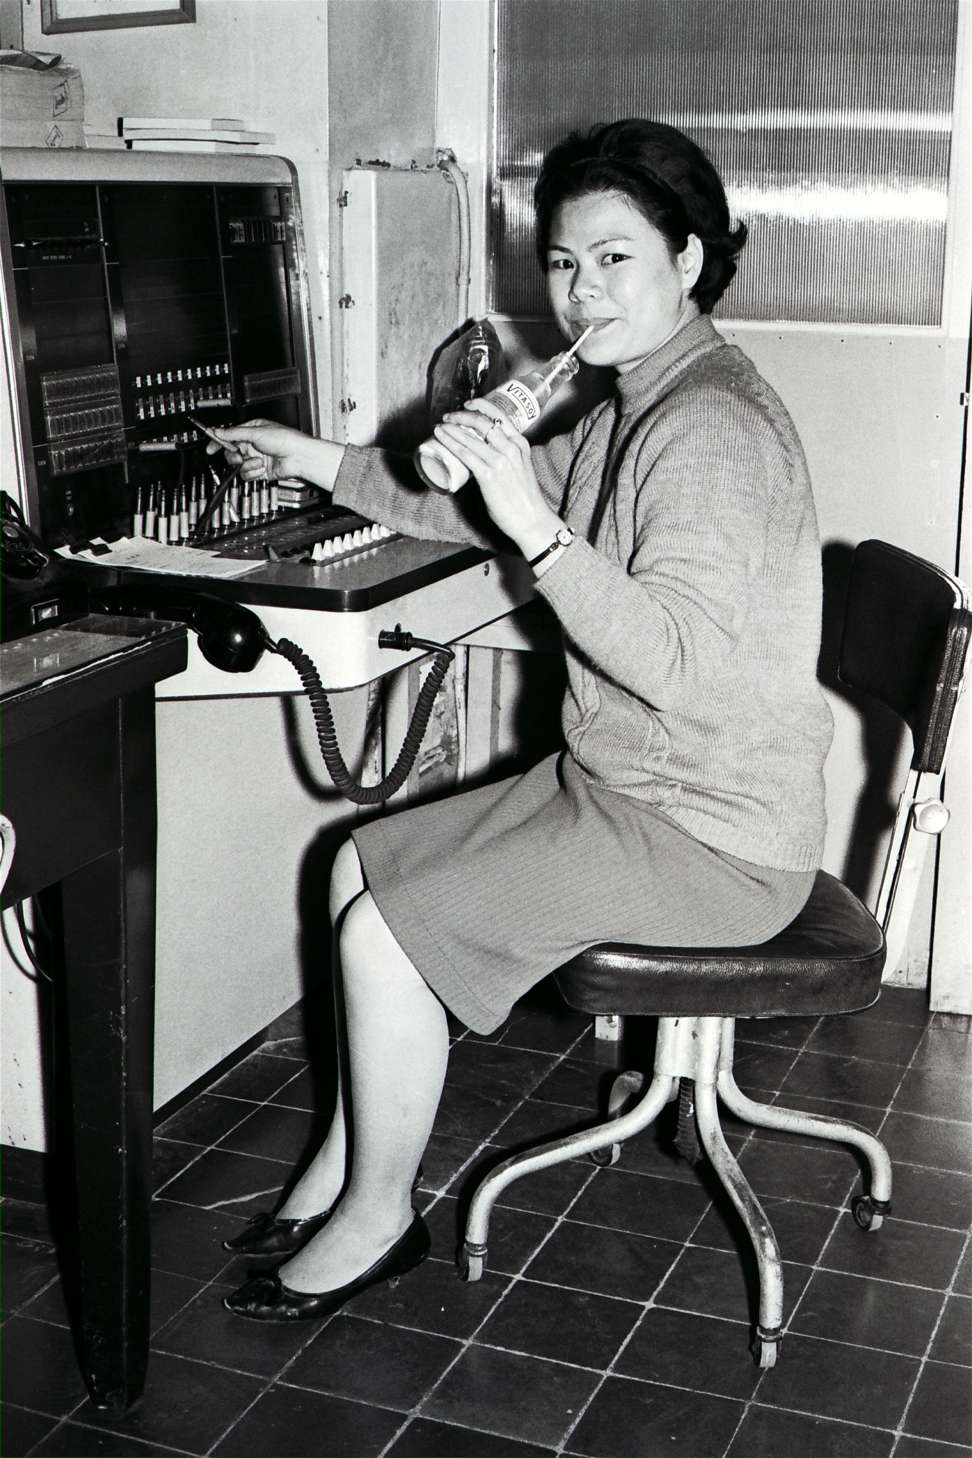 A switchboard operator at Vitasoy drinks a bottle of the company's soya milk in this picture from 1967. Photo: SCMP